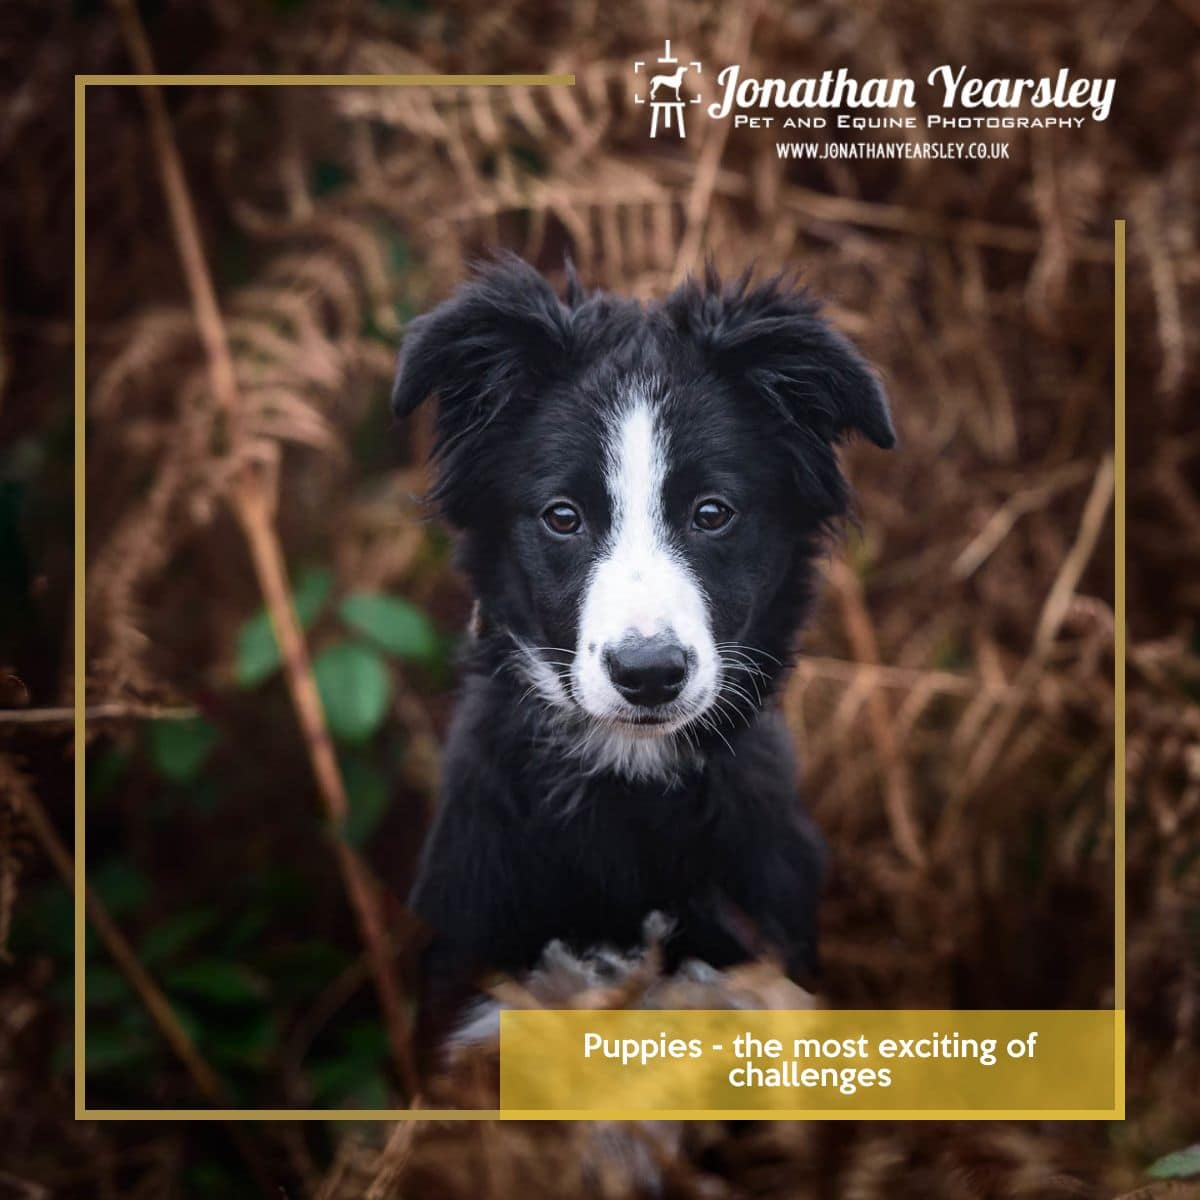 Puppies-the-most-exciting-of-challenges-to-photograph